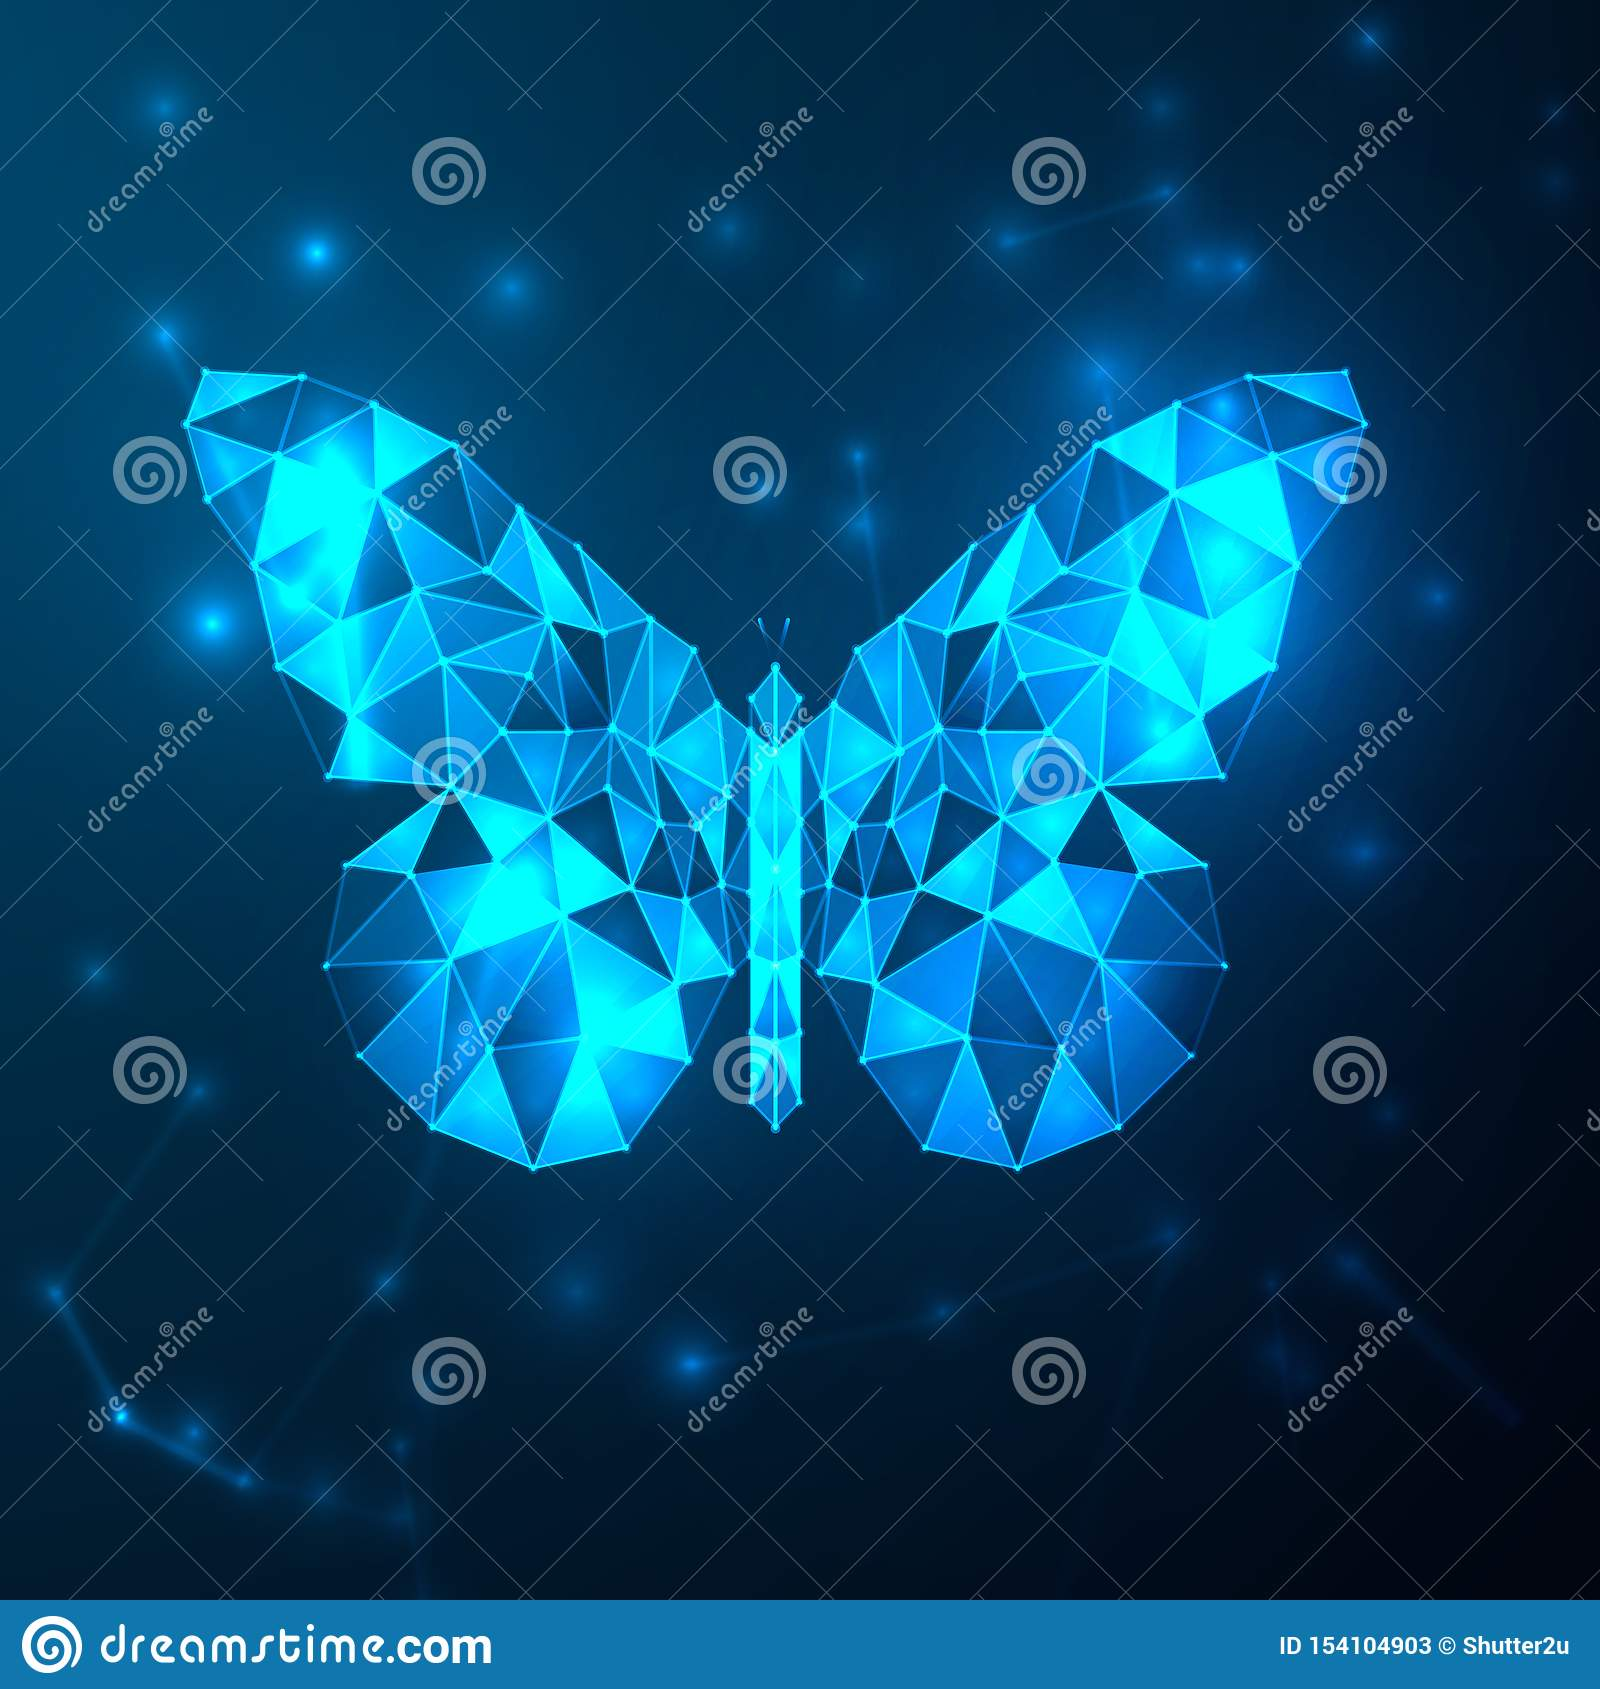 Abstract Blue Futuristic Butterfly Low Polygon Technology With